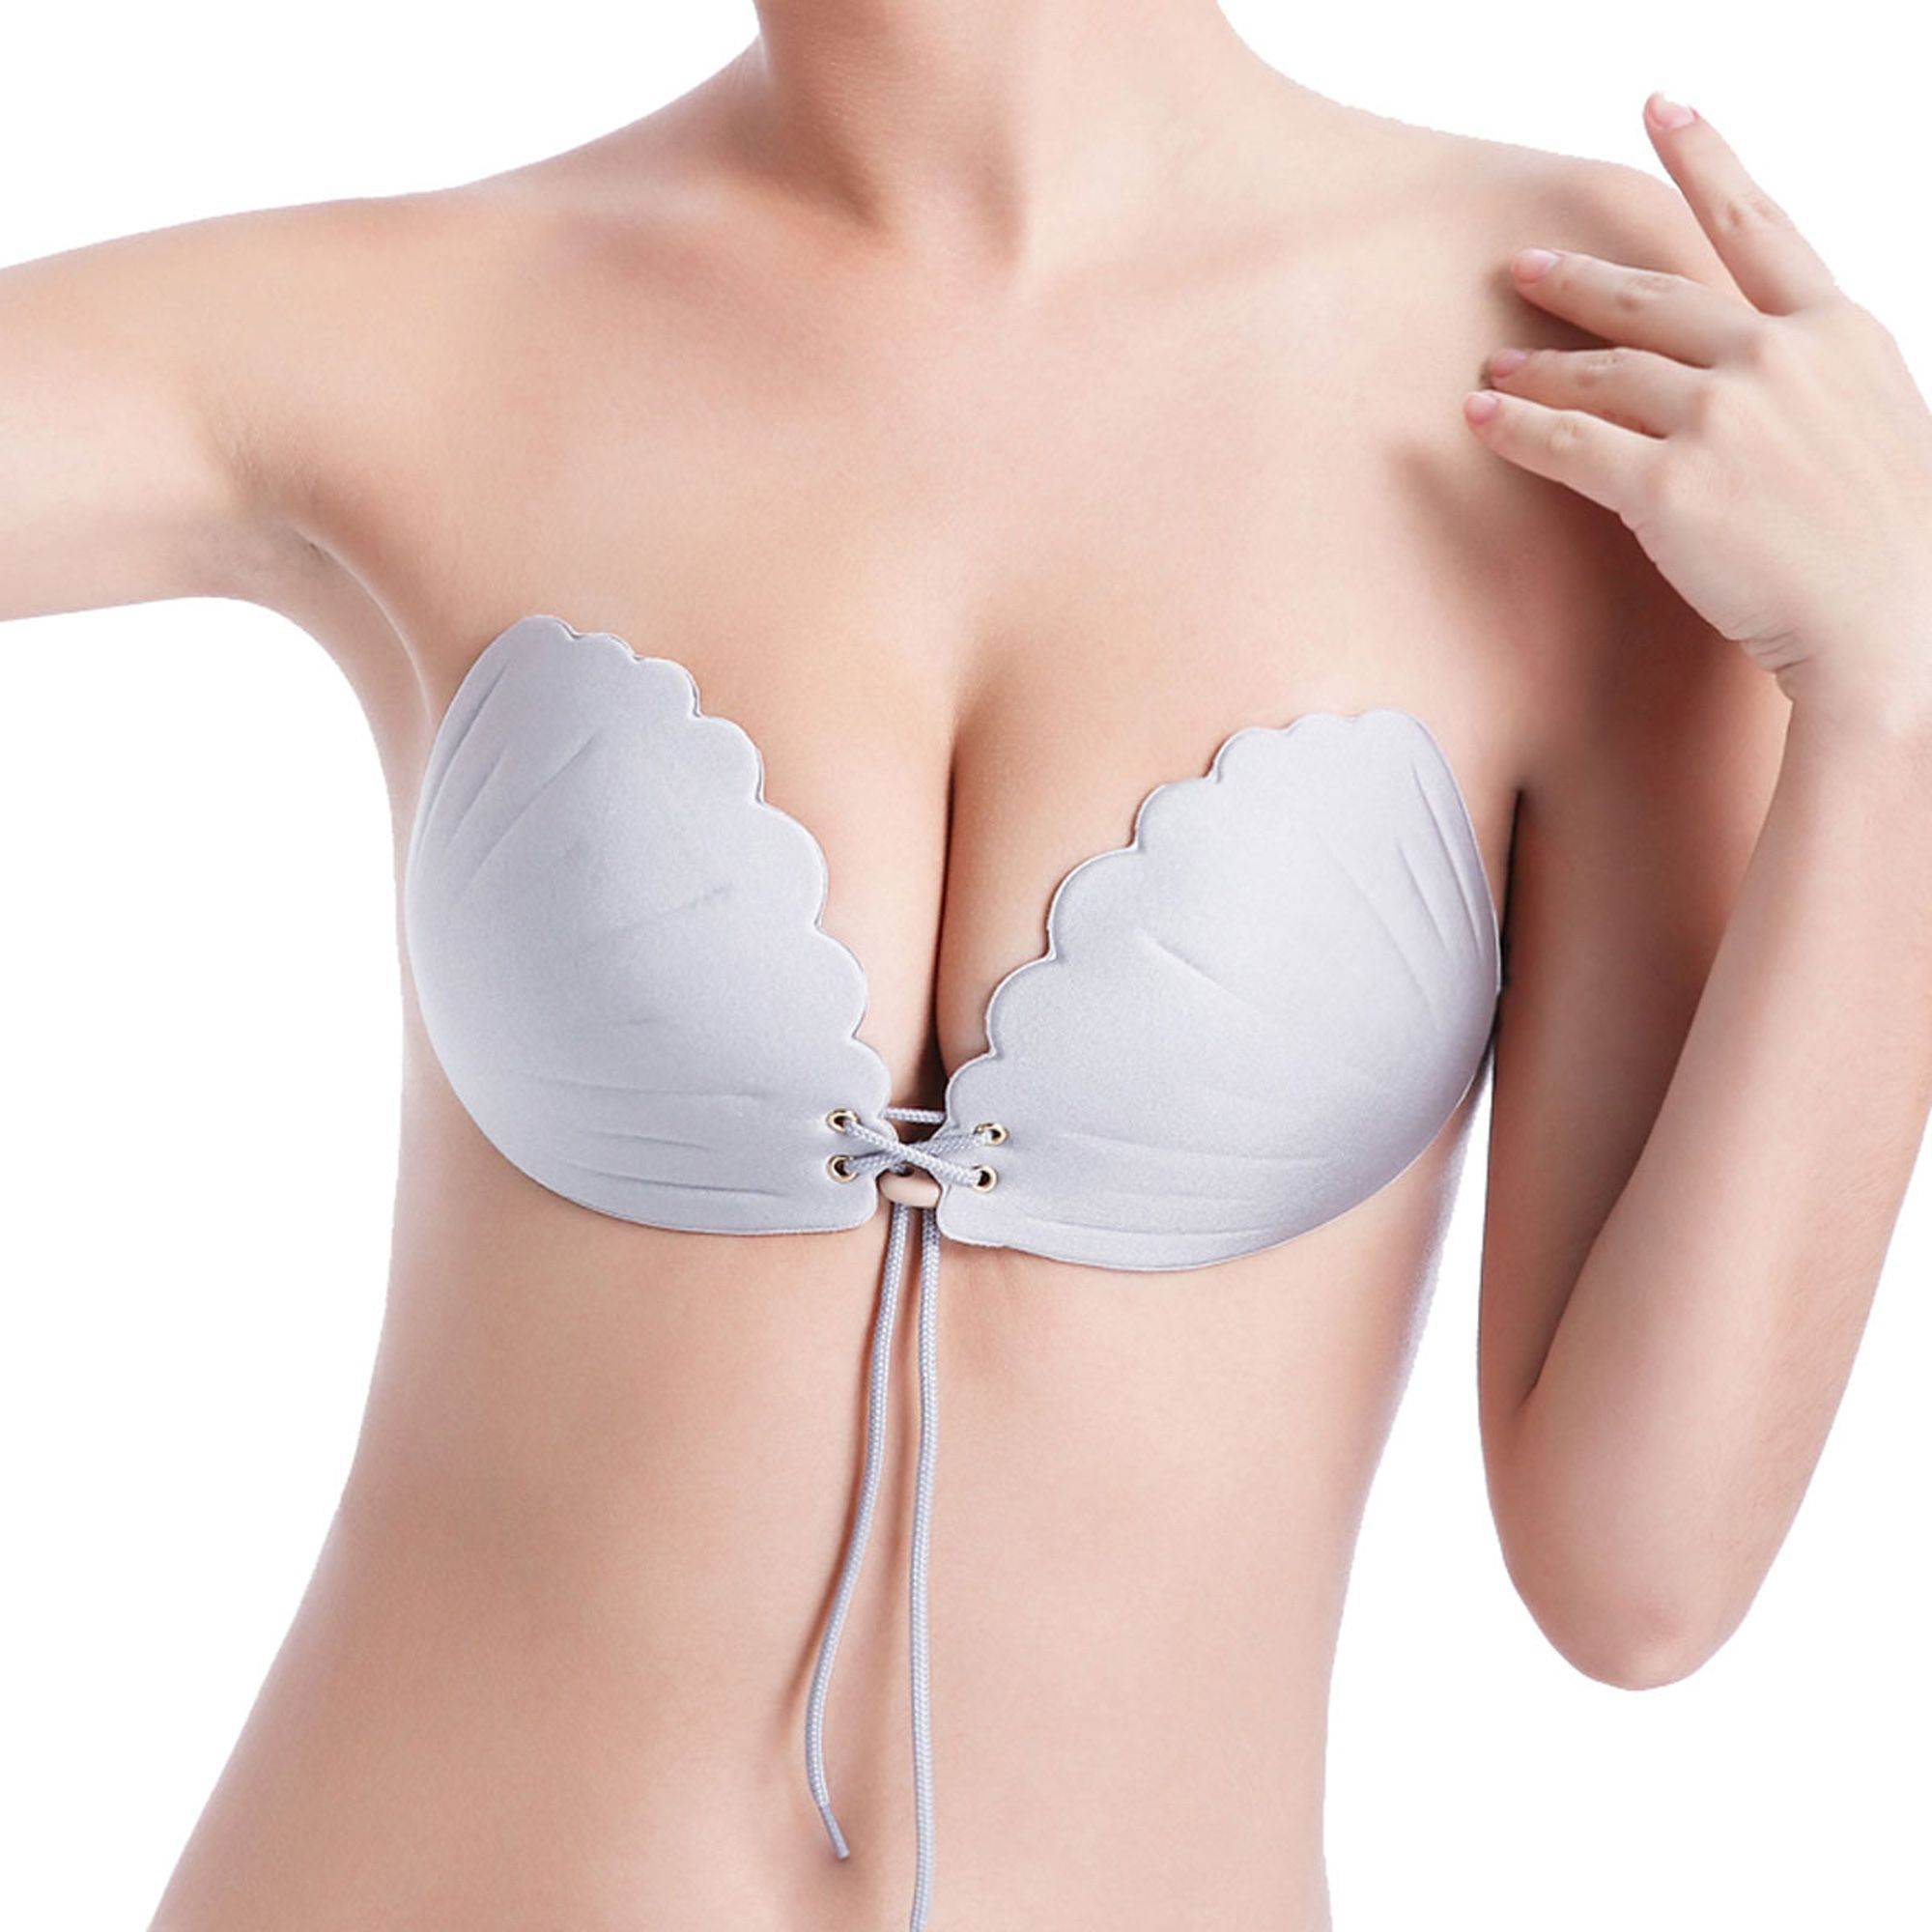 Sayfut Sayfut Strapless Bra Push Up Reusable Silicone Women Self Adhesive Sticky Backless Dresses And Wedding Bra 5 Styles To Choose Cup A E Black Grey Be Wedding Bra Party Bra Beige Skin [ 2000 x 2000 Pixel ]